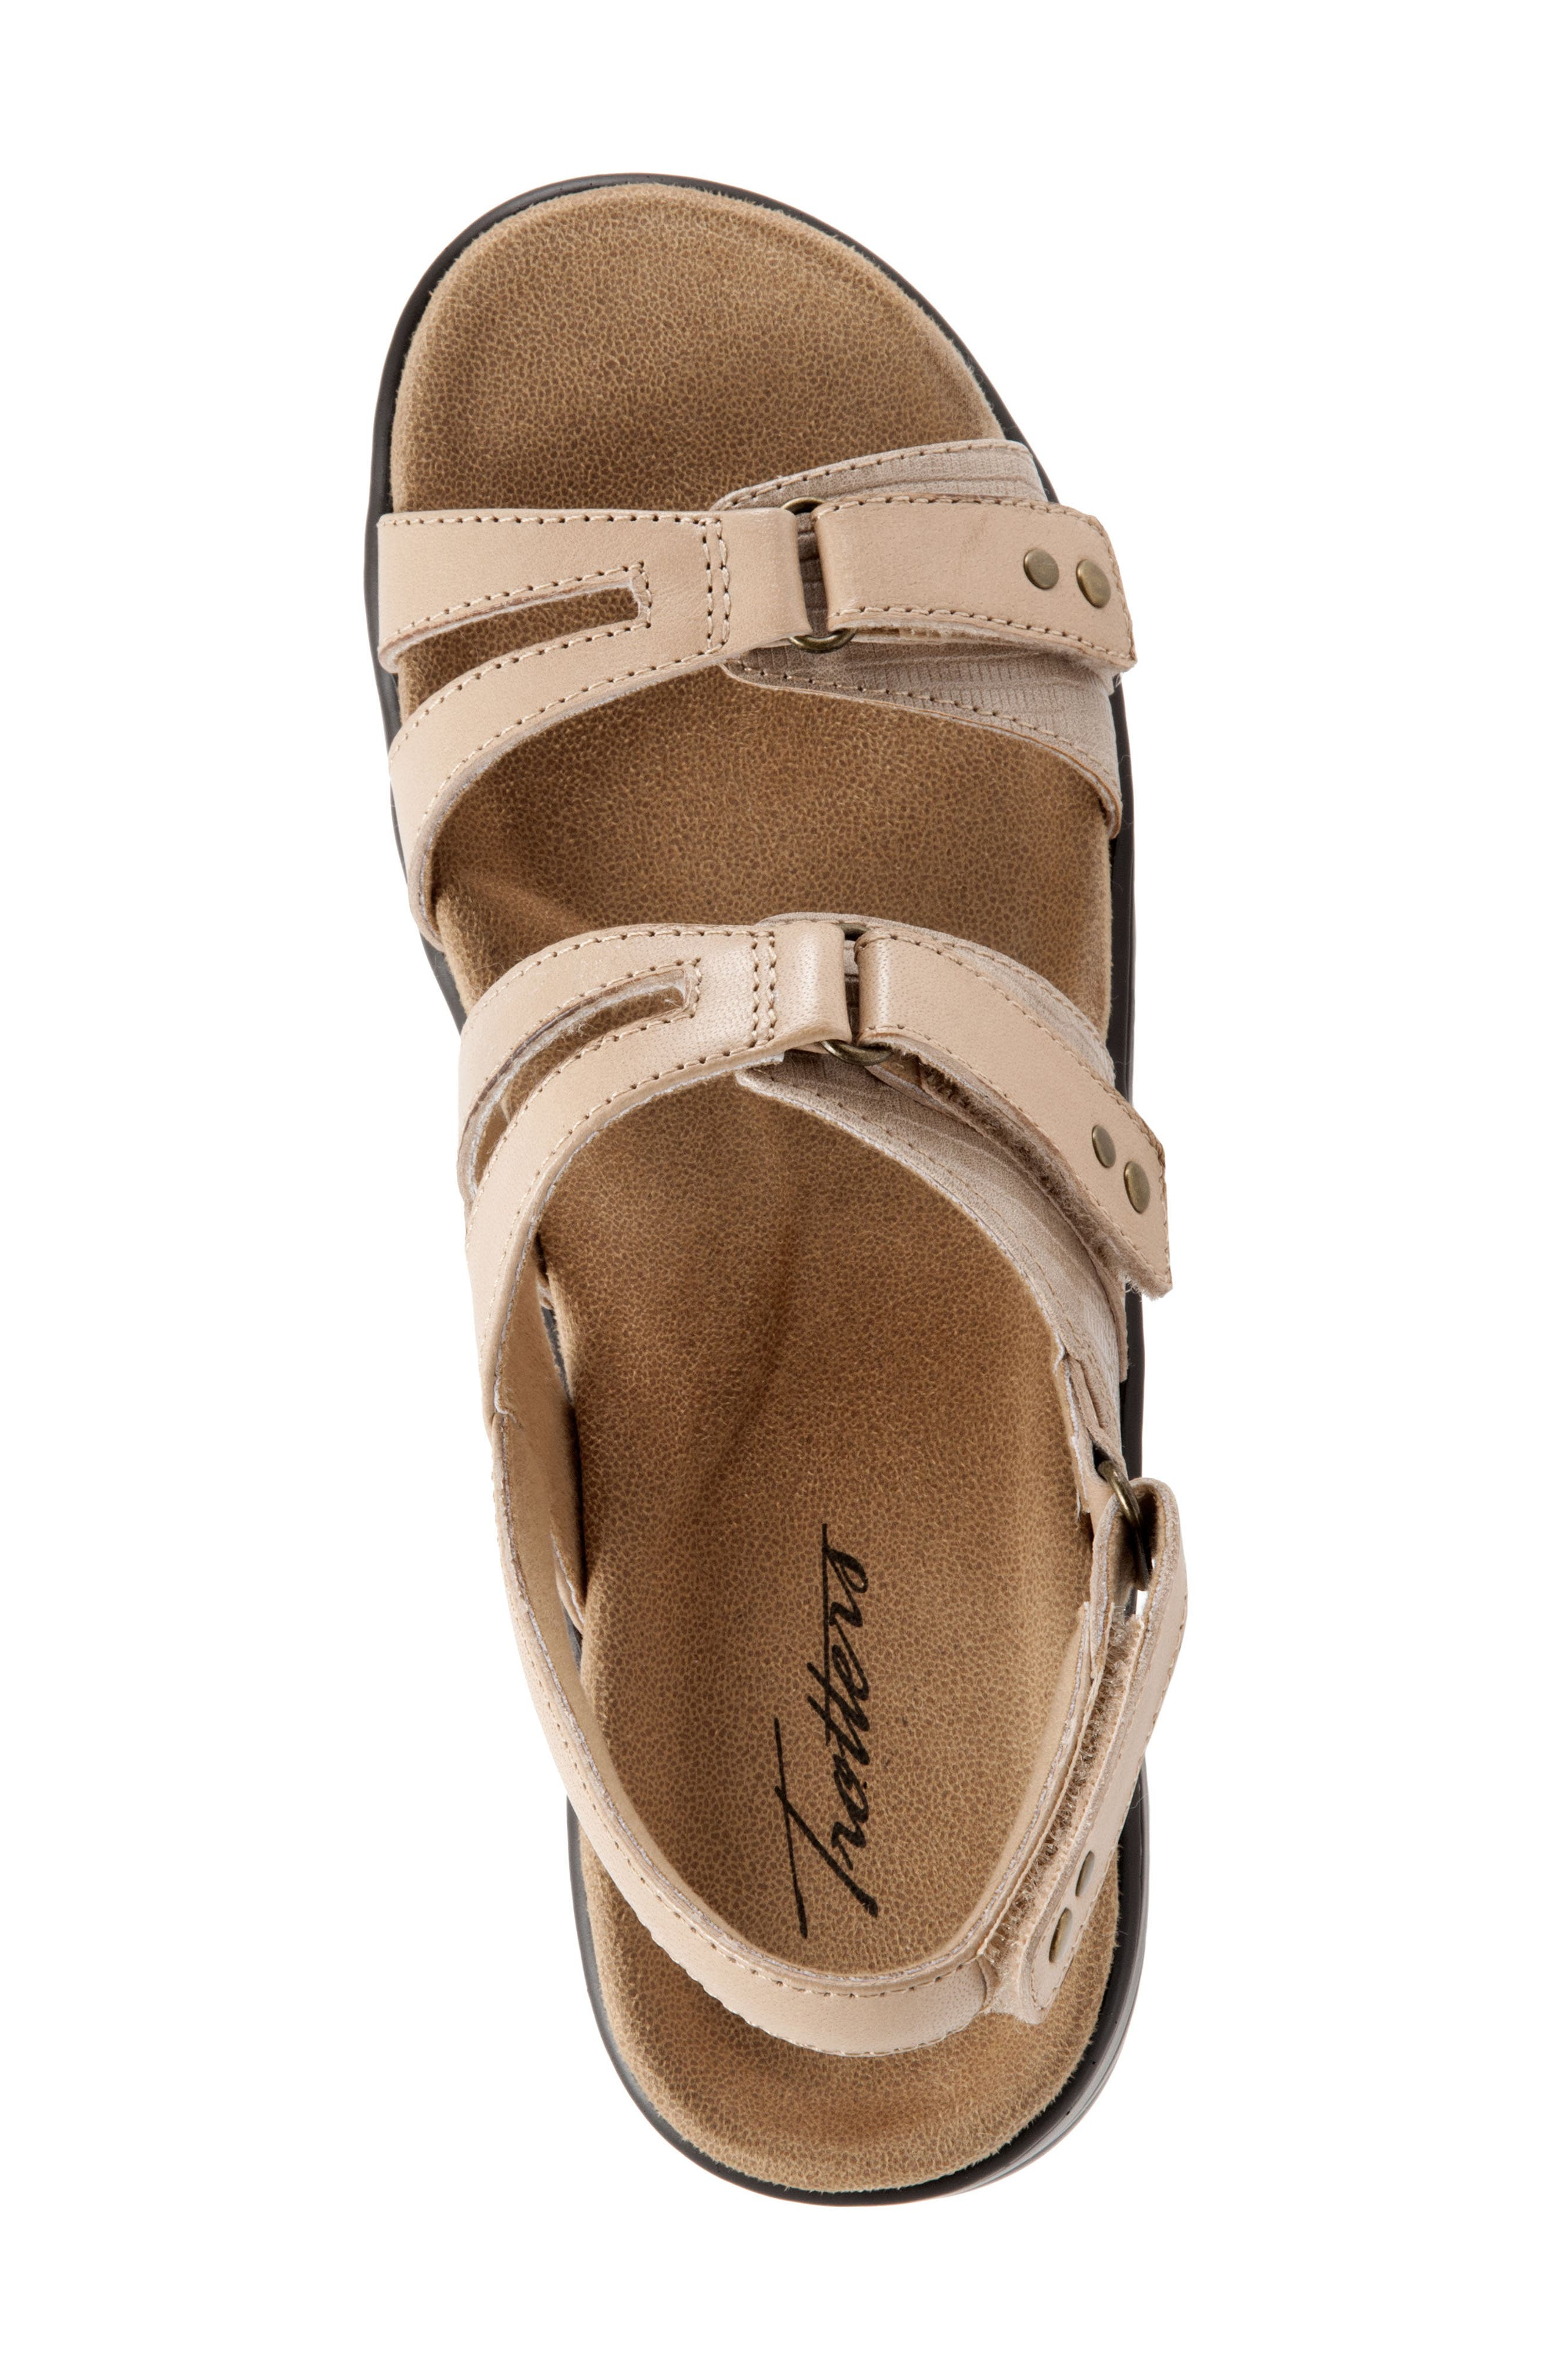 Newton Sandal,                             Alternate thumbnail 5, color,                             Beige/ Off White Leather